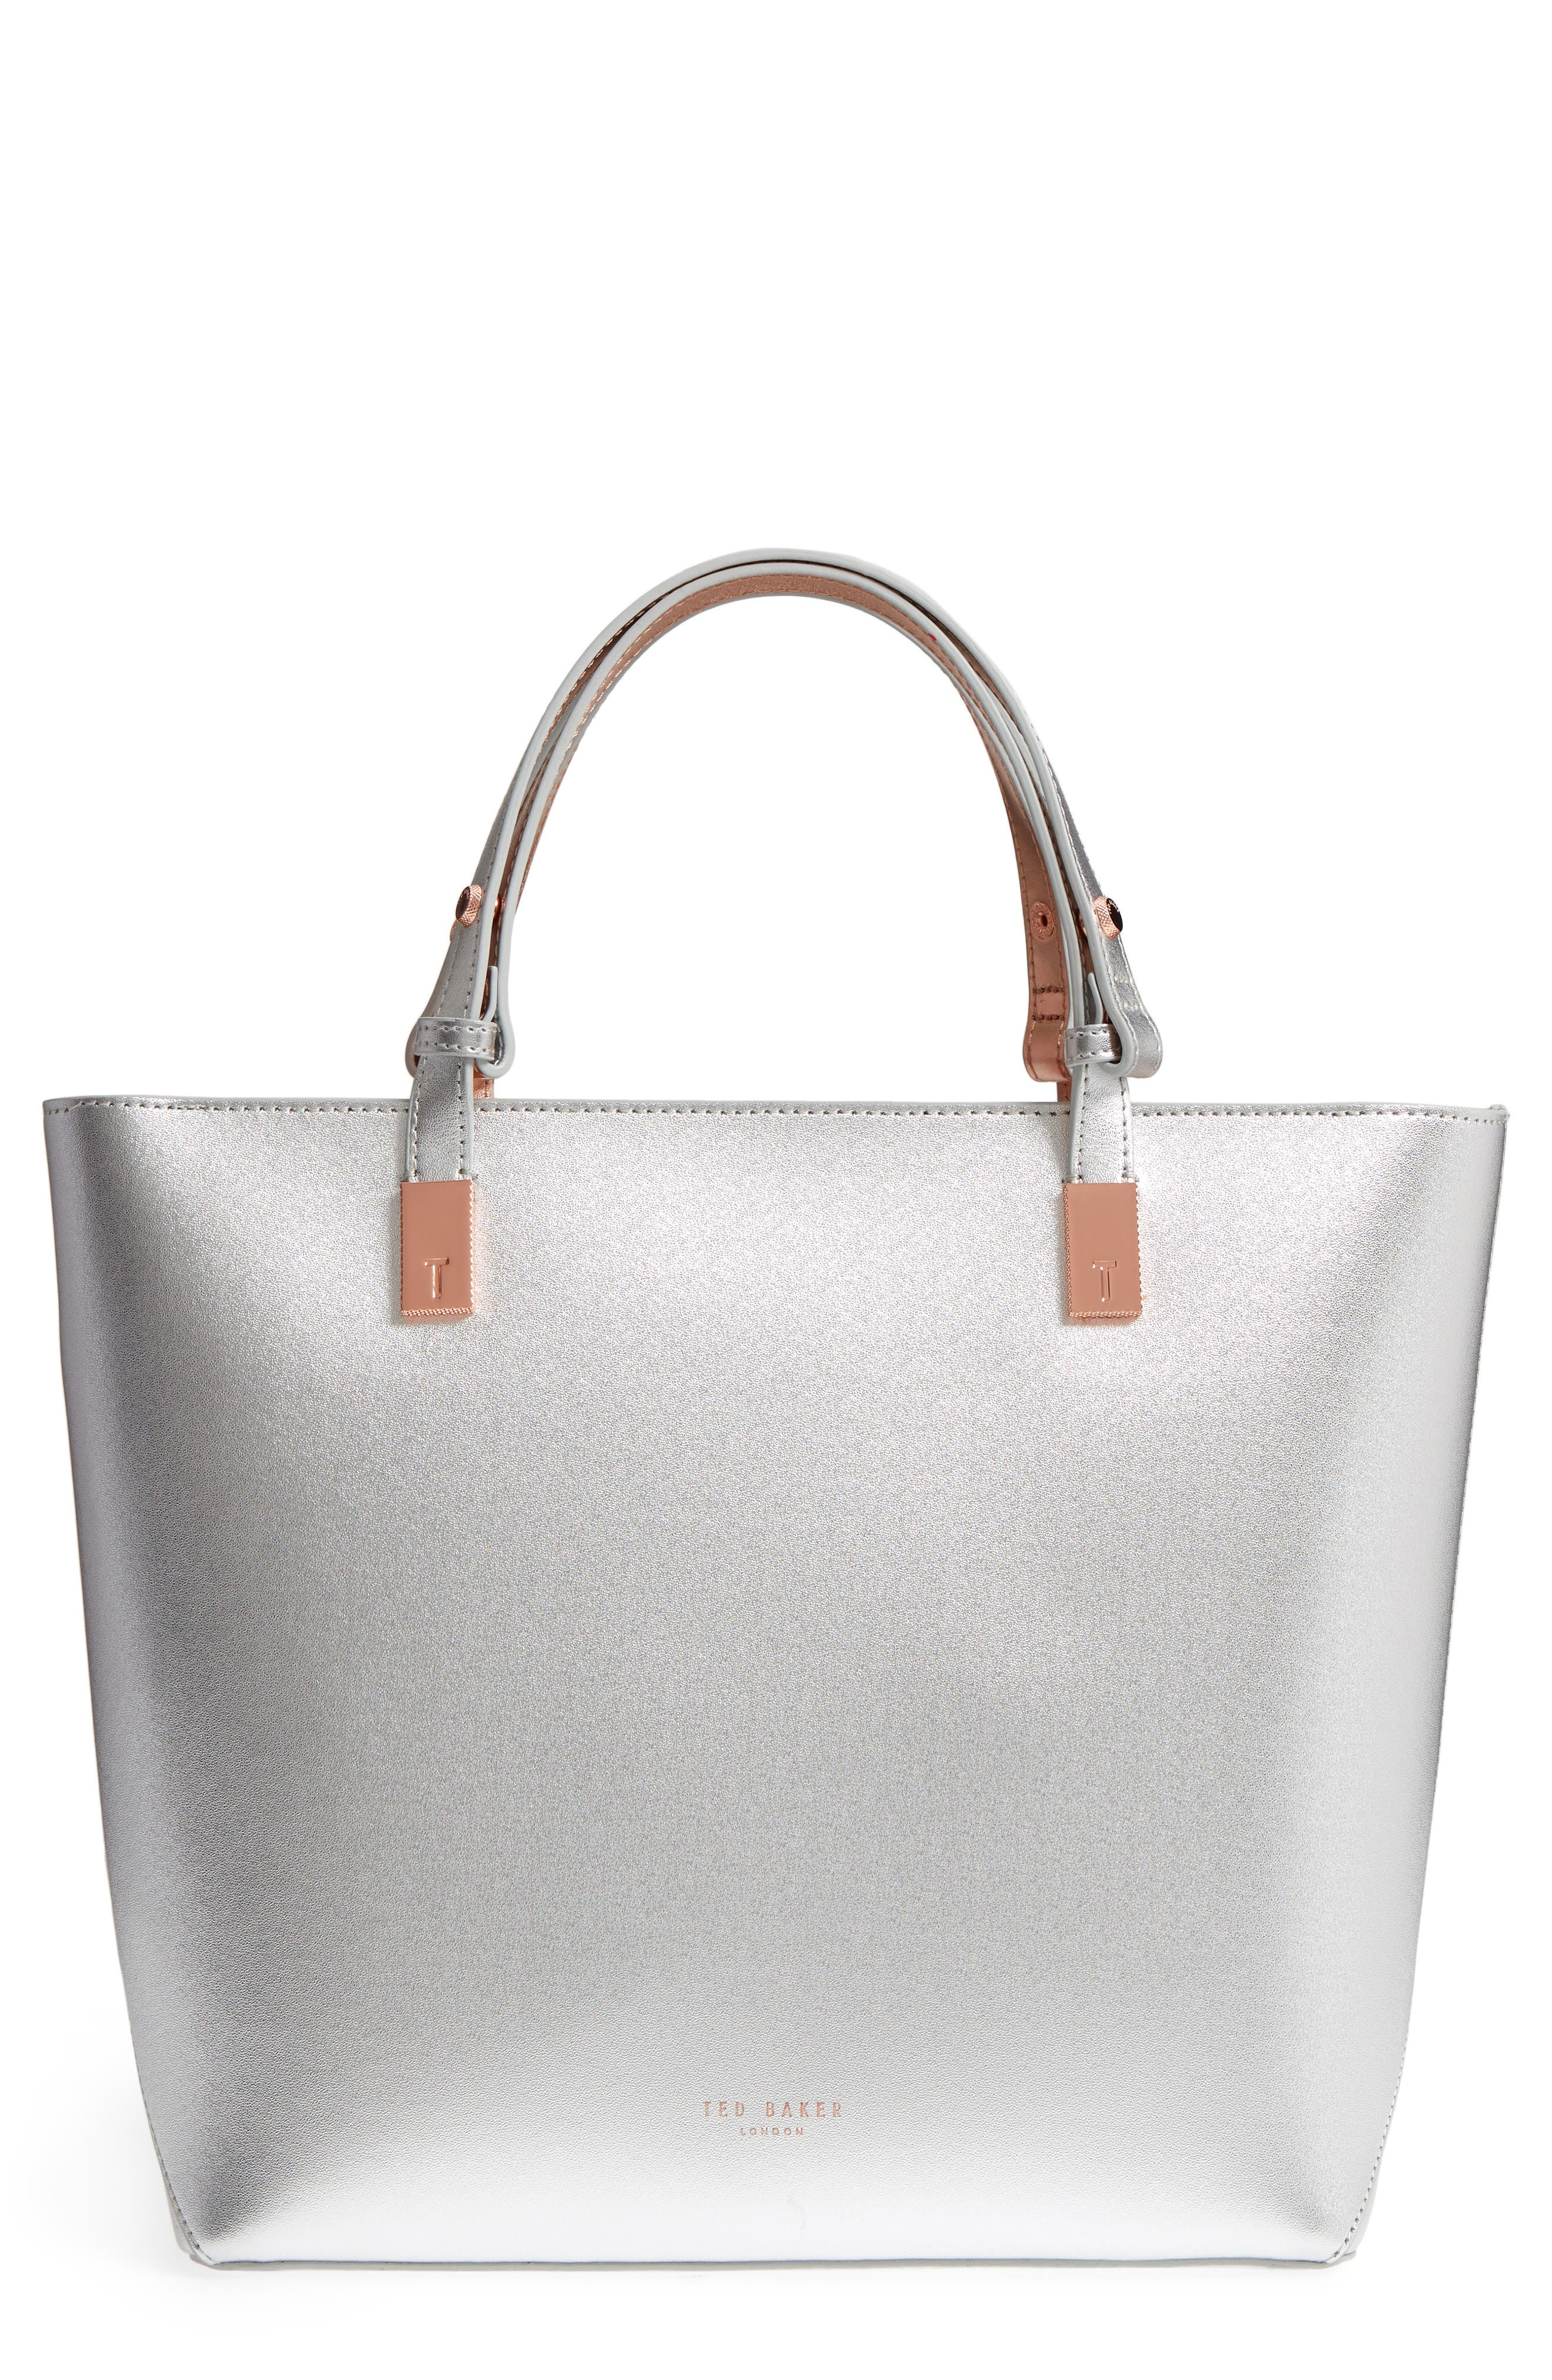 Adjustable Handle Leather Tote,                             Main thumbnail 1, color,                             SILVER